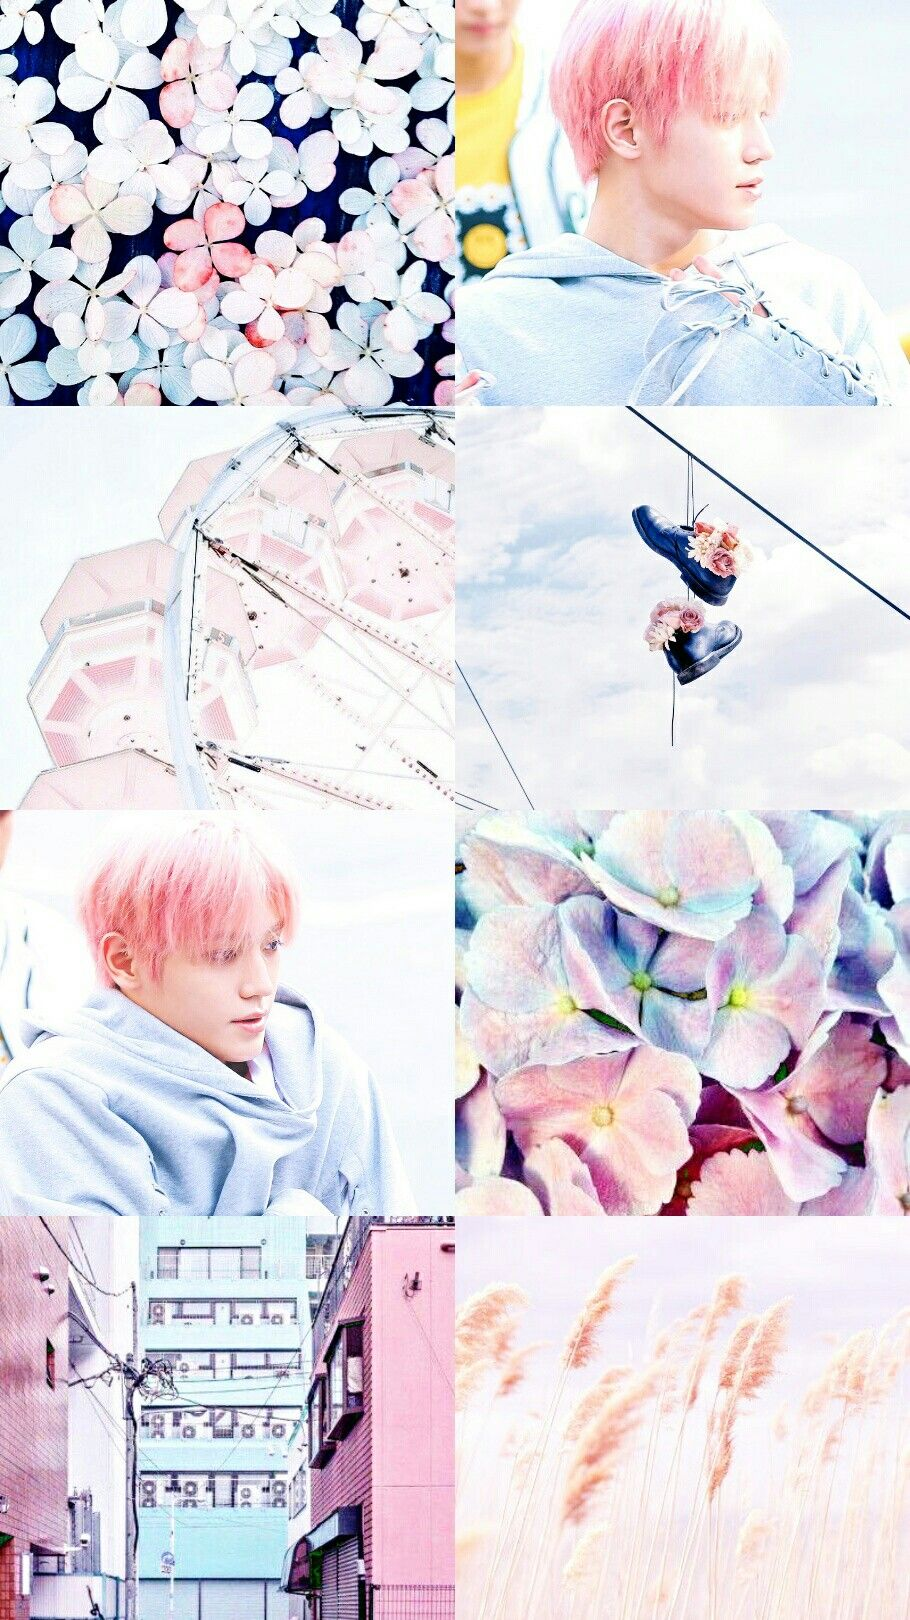 Taeyong Nct Aesthetic Kpop Wallpapers Wallpaper Ponsel